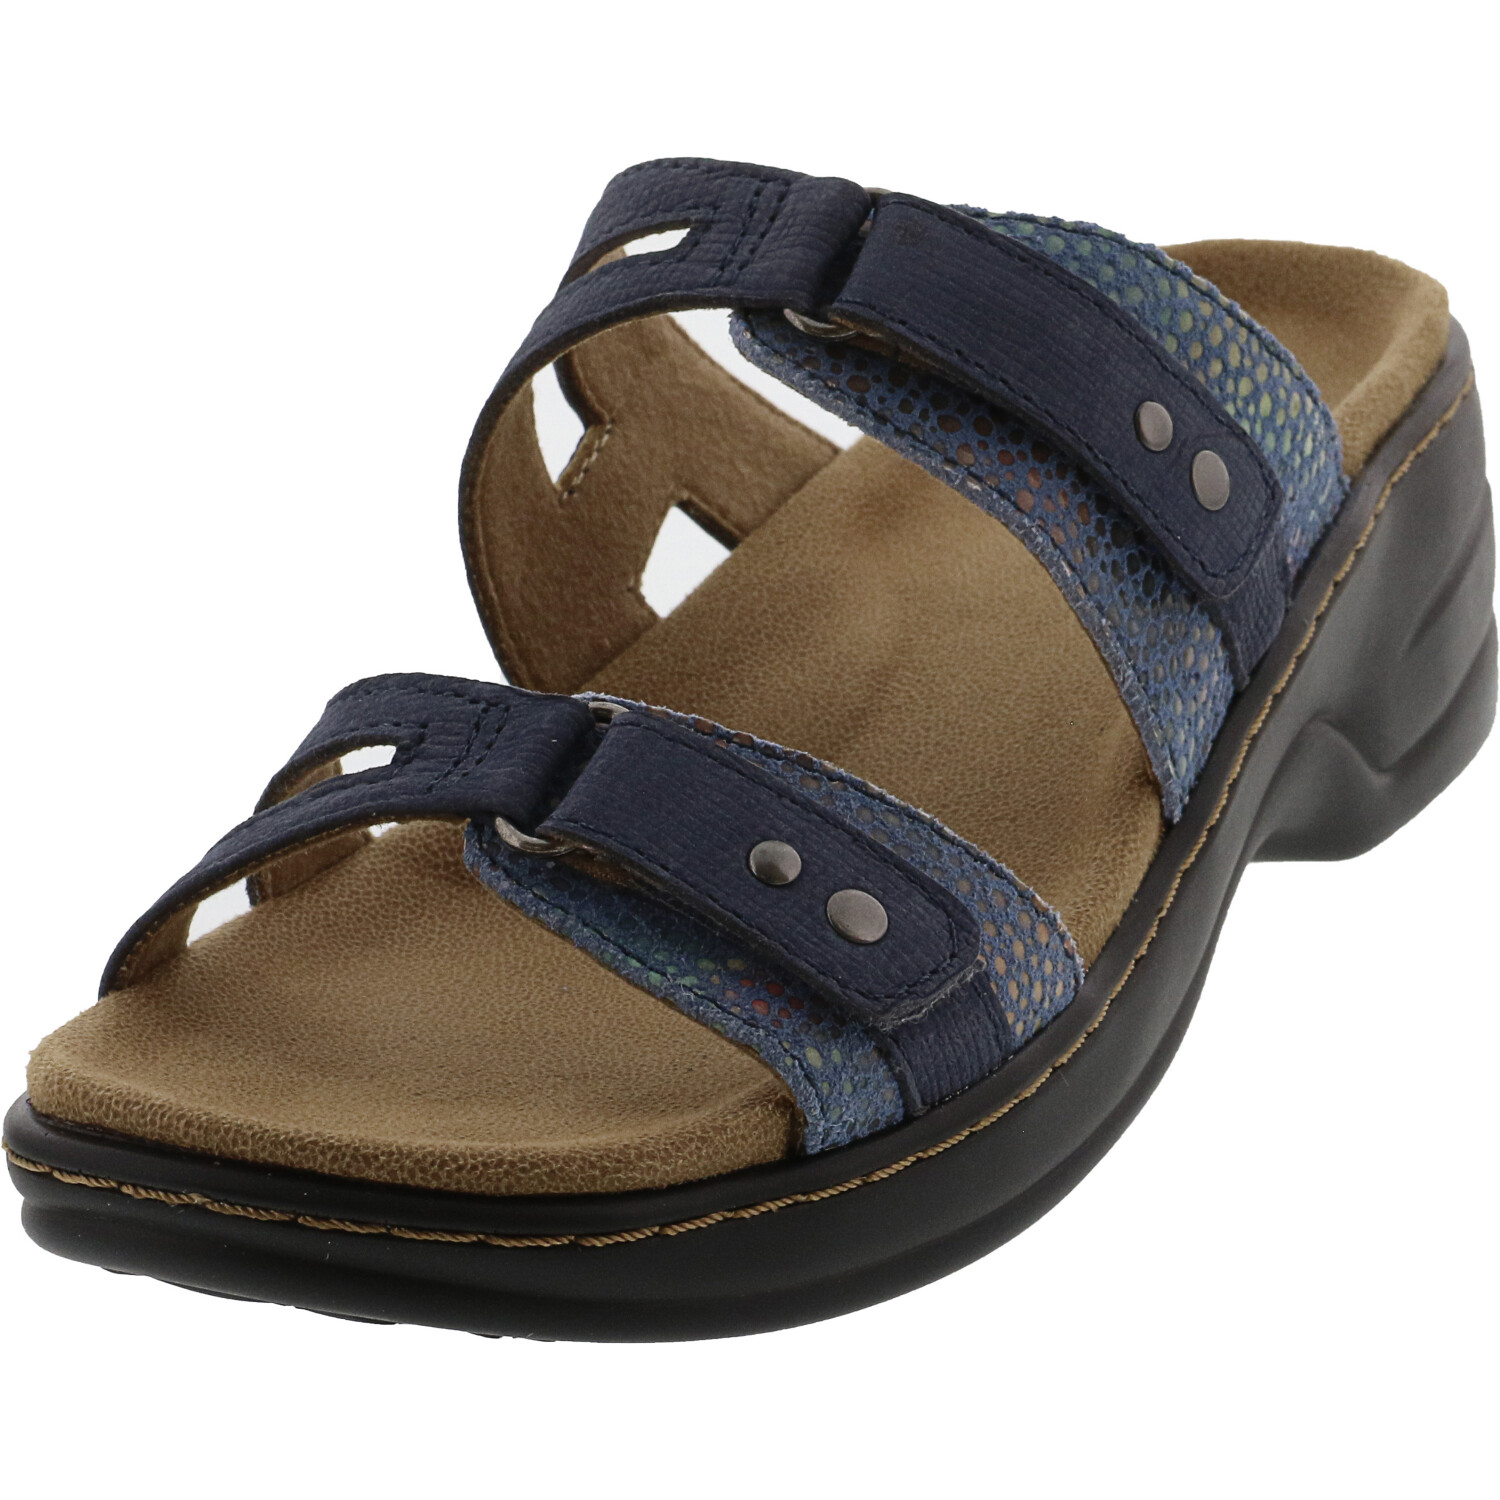 Trotters Women's Neiman Blue Leather Sandal - 5M